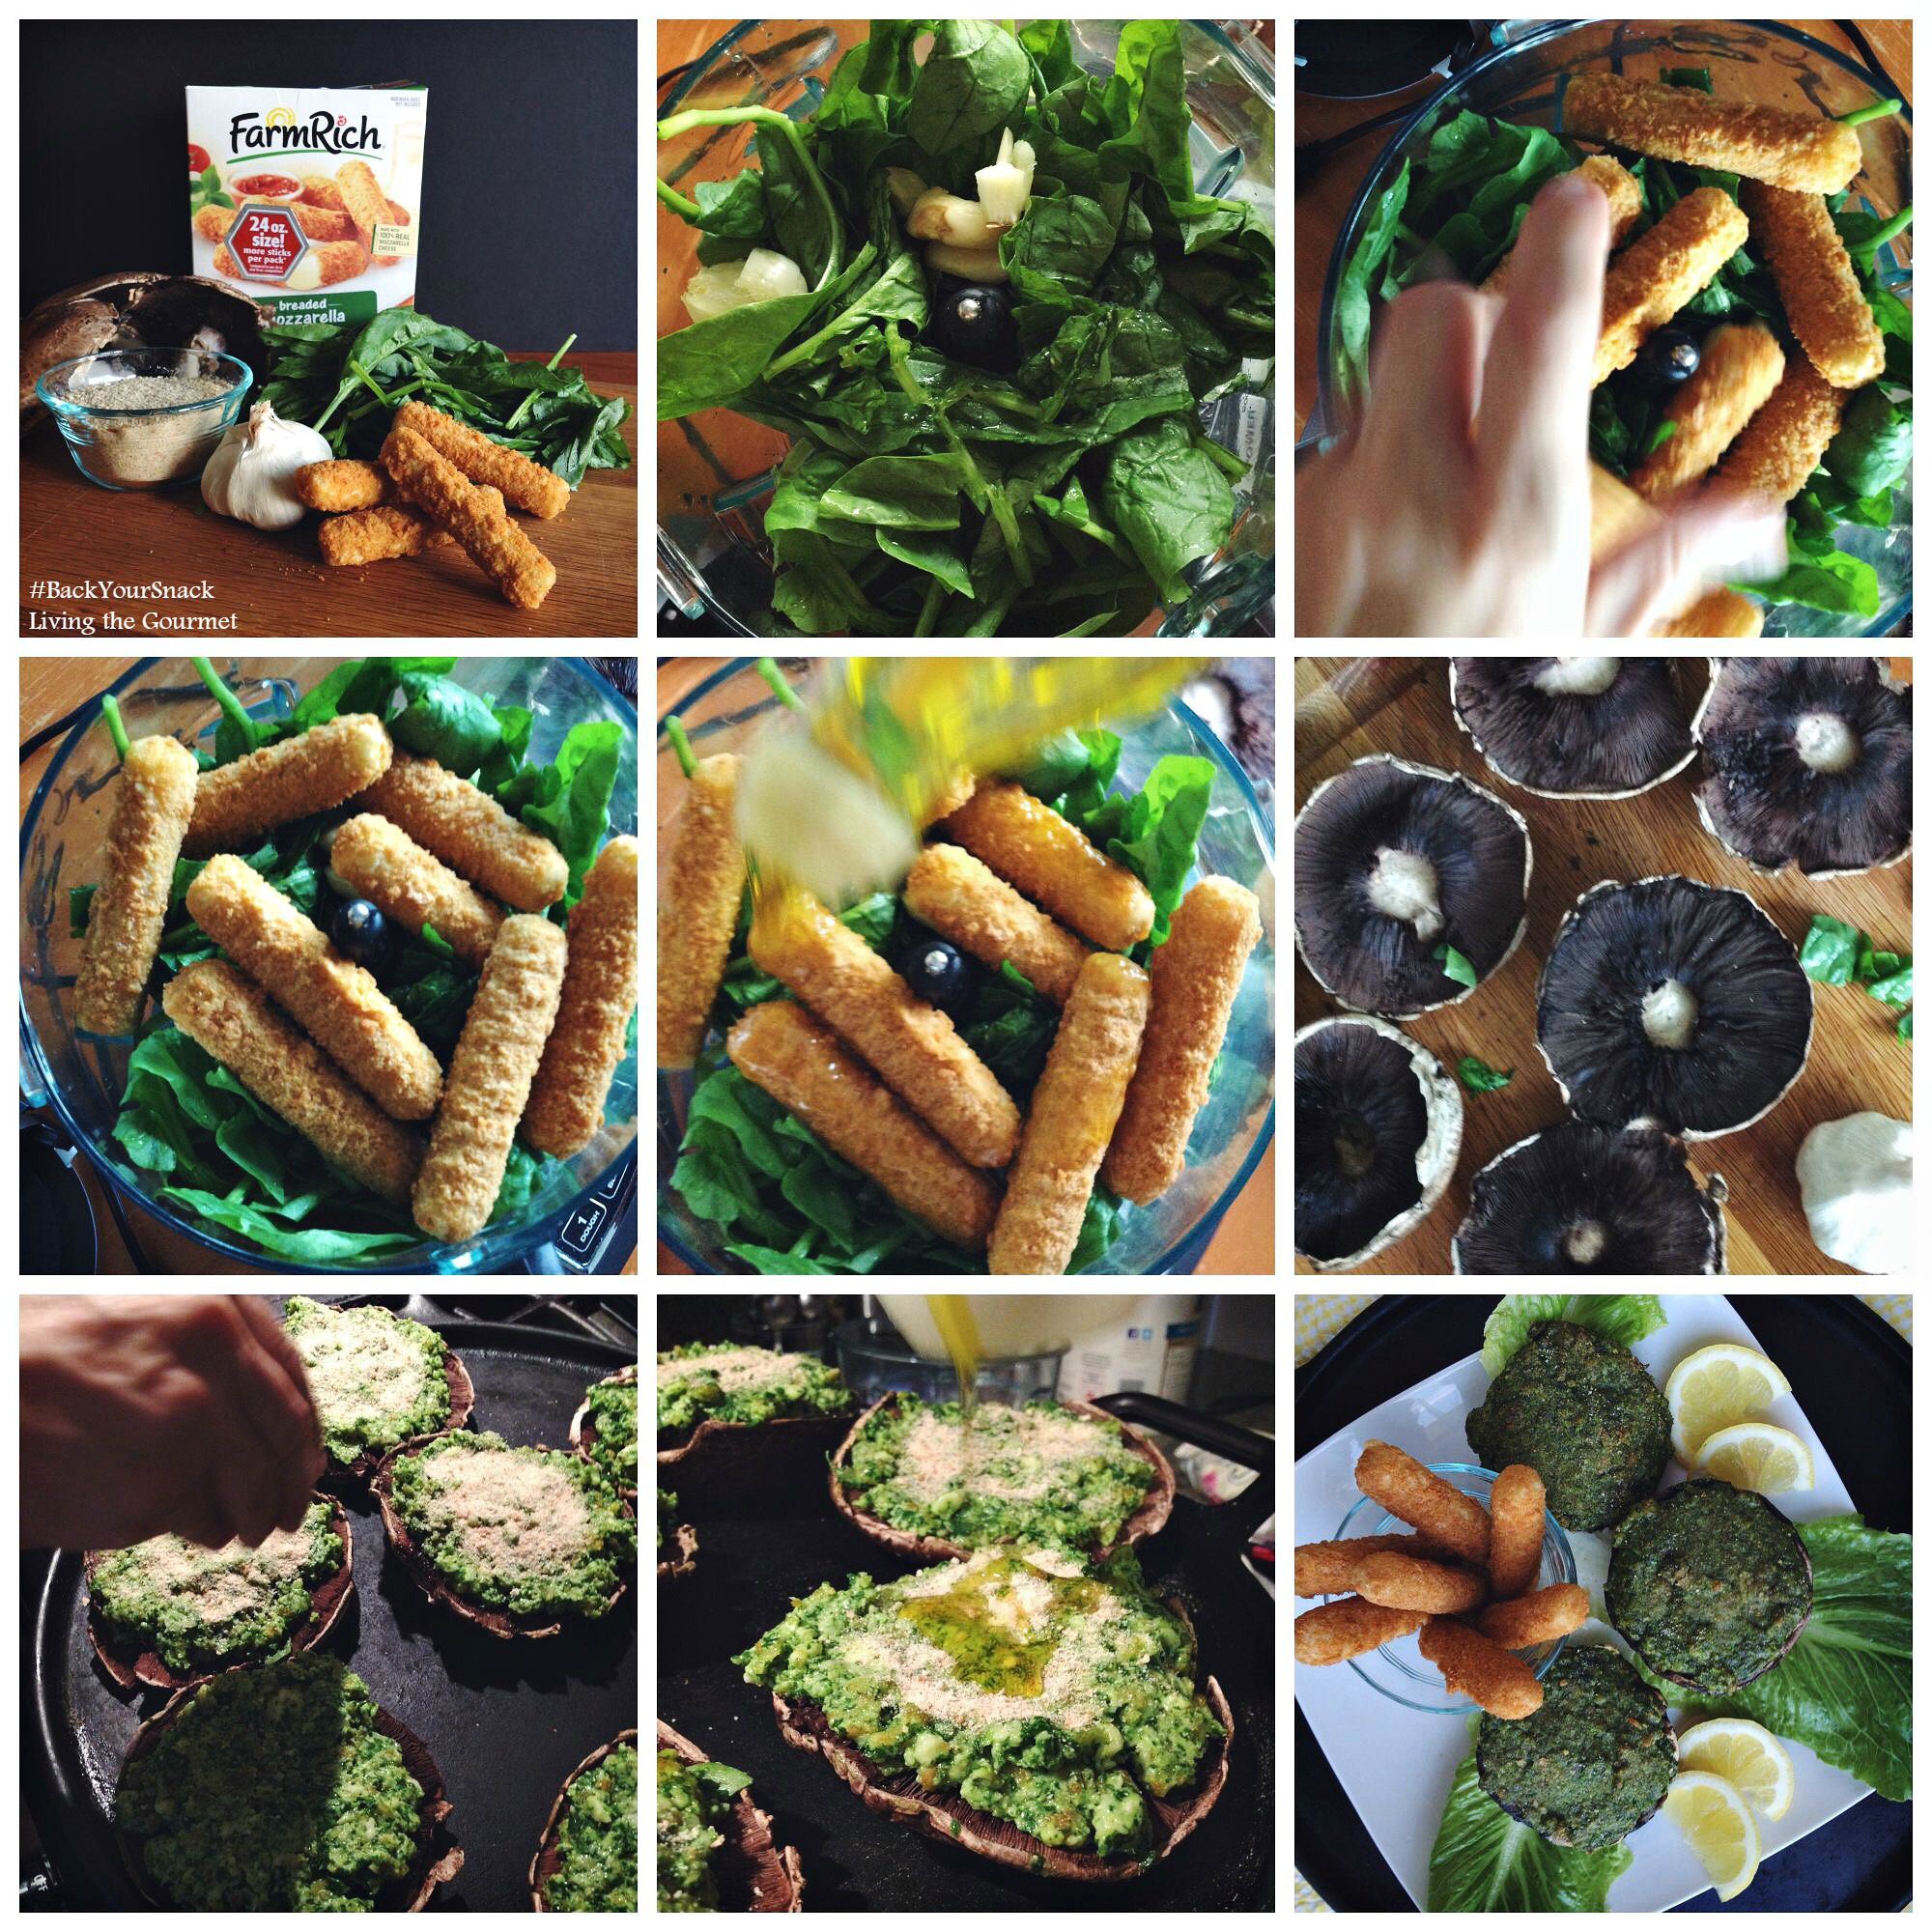 Living the Gourmet: Mozzarella & Spinach Stuffed Mushrooms | #BackYourSnack #ad